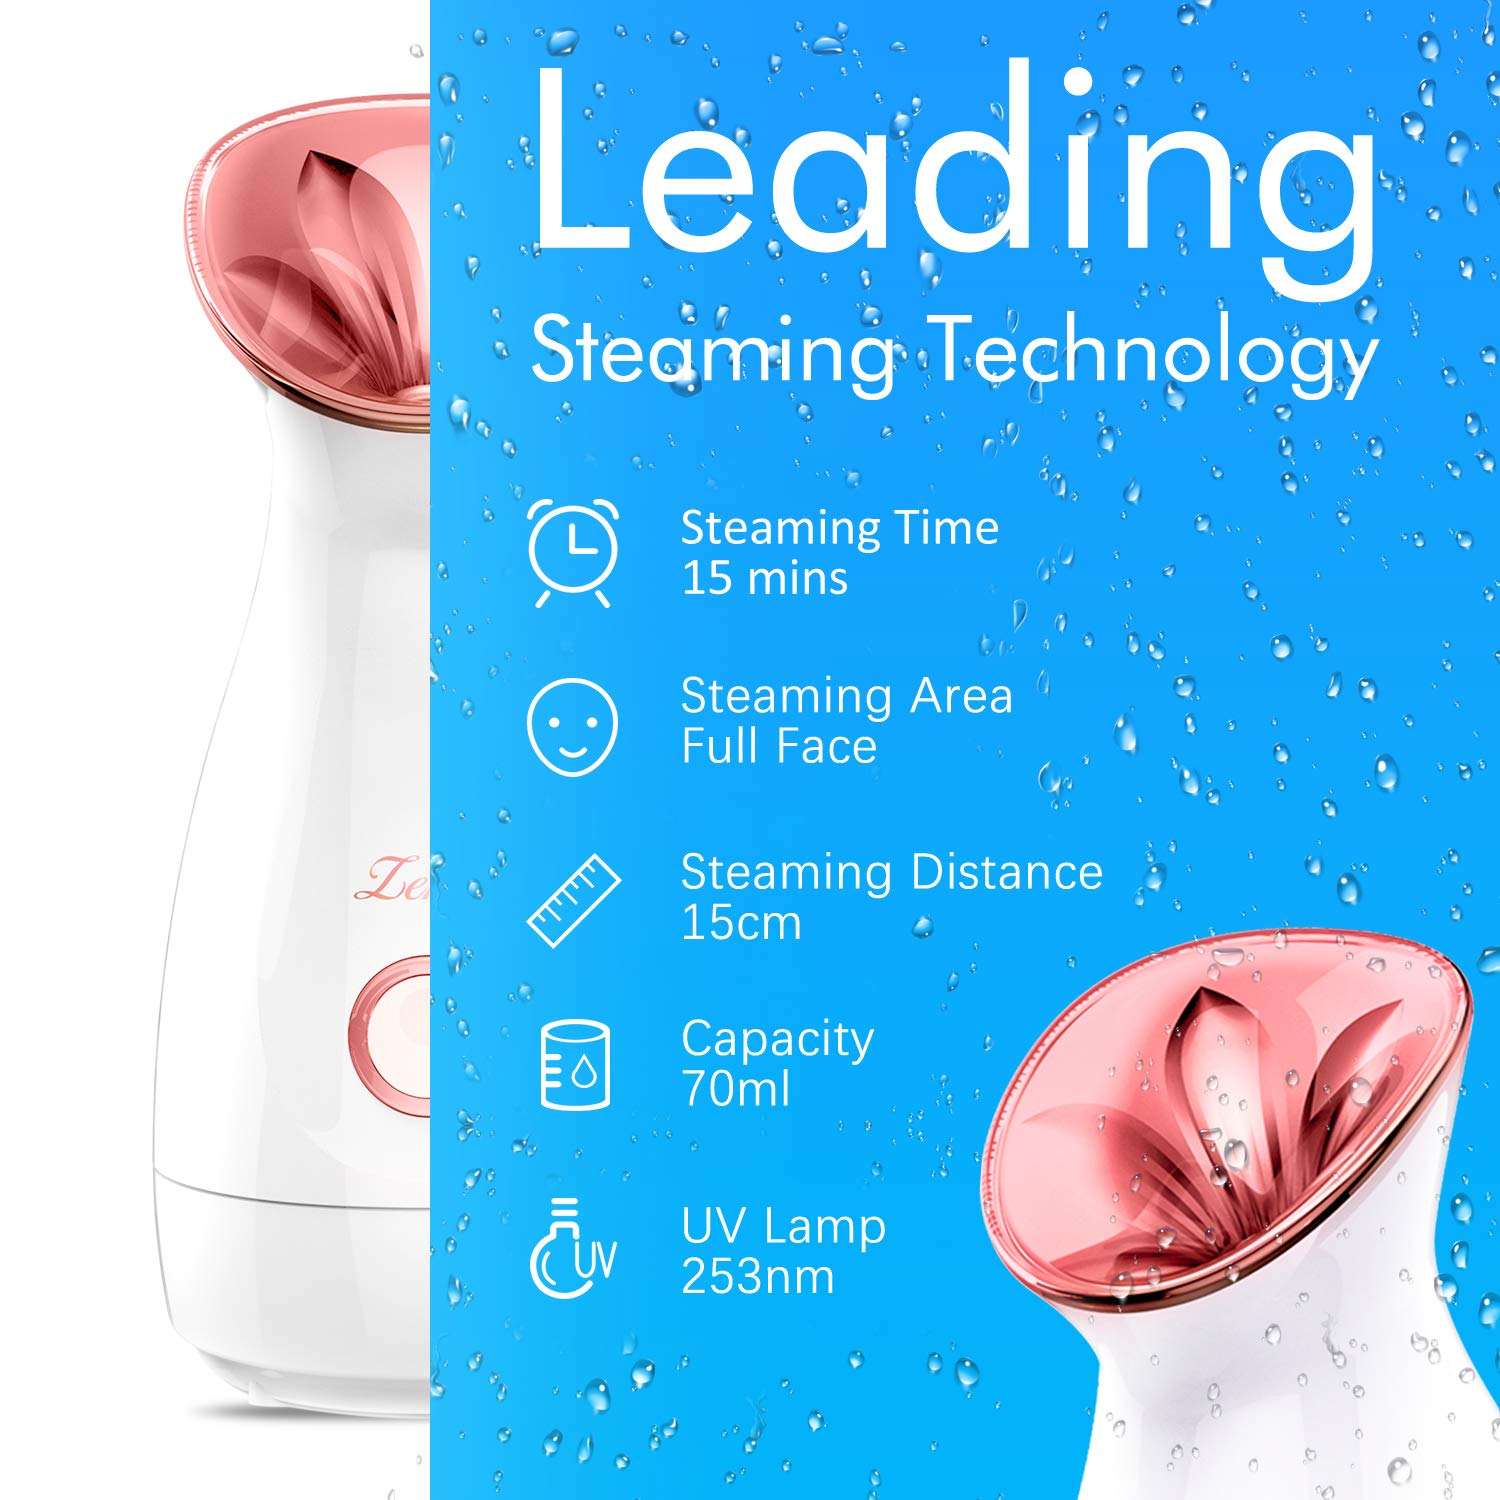 Facial Steamer Nano Ionic Hot Mist Face Steamer Home Sauna SPA Face Humidifier Atomizer for Women Men Moisturizing Unclogs Pores Spa Quality: Beauty